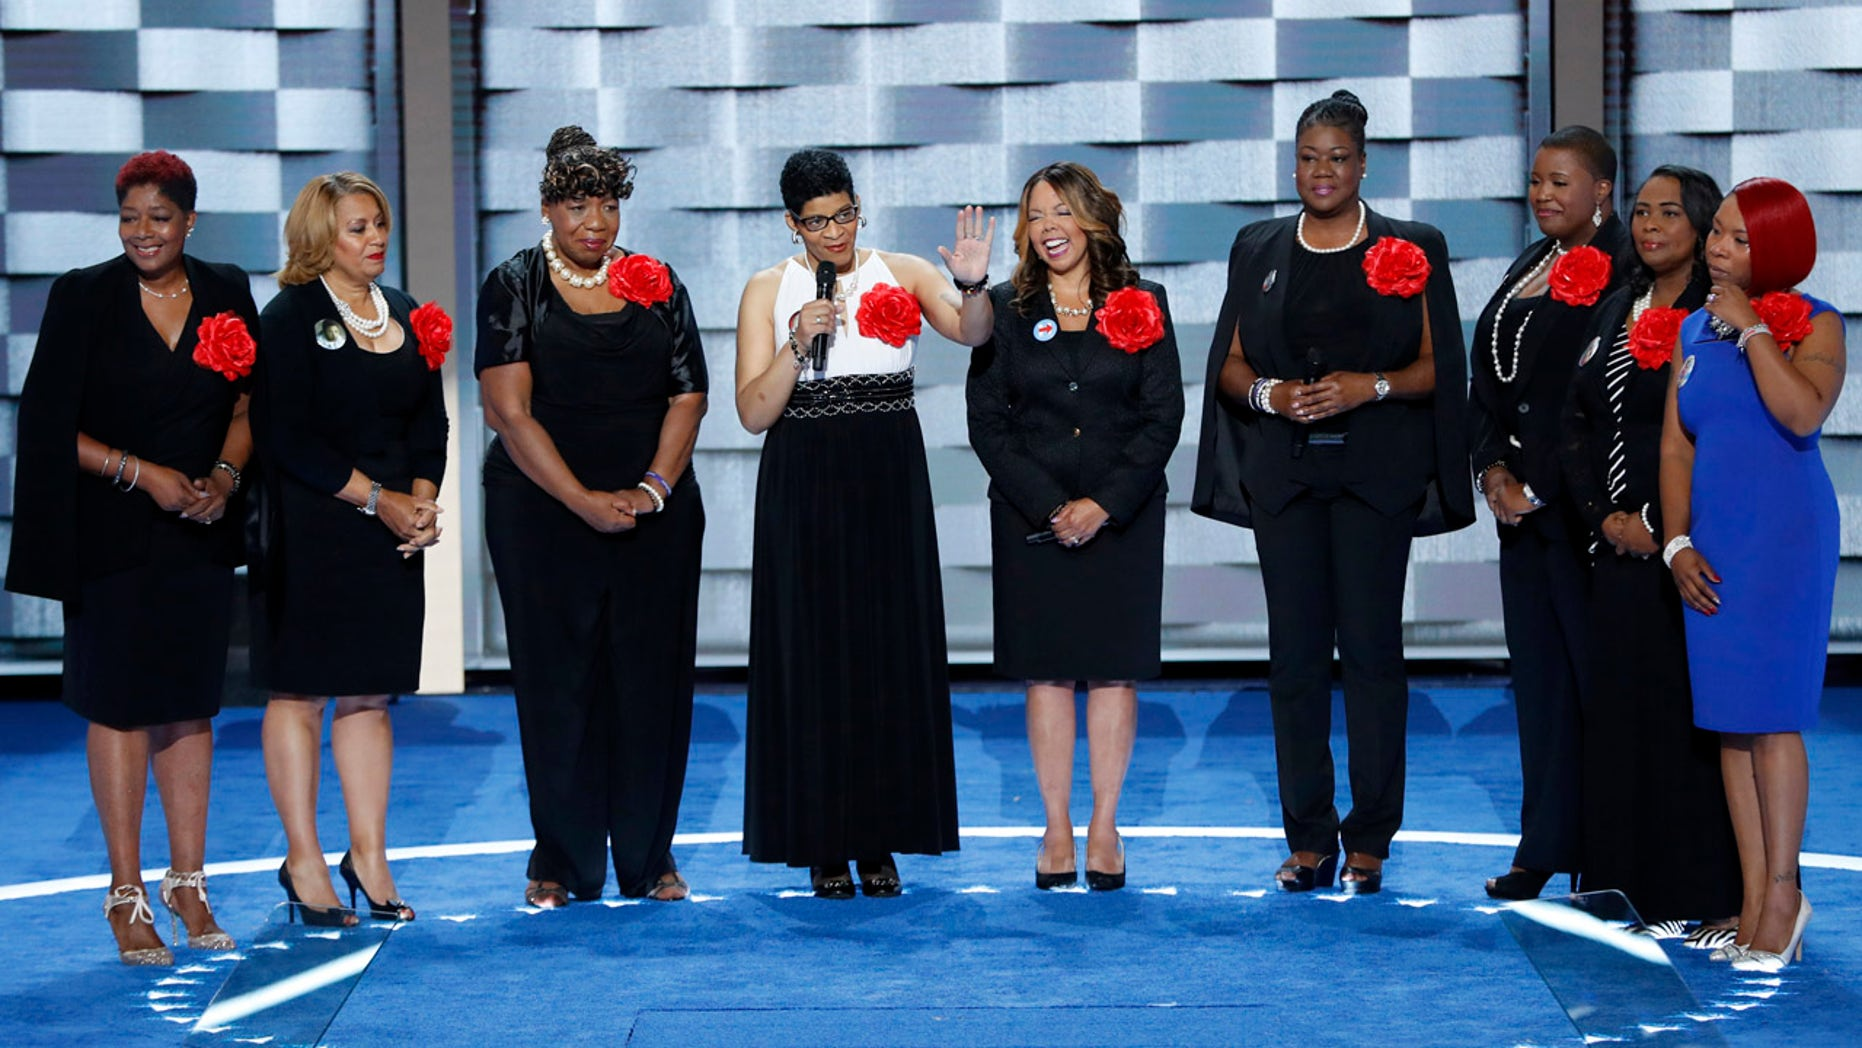 July 26, 2016: Sybrina Fulton, Geneva Reed-Veal, Lucy McBath, Gwen Carr, Cleopatra Pendleton, Maria Hamilton, Lezley McSpadden and Wanda Johnson from Mothers of the Movement speak during the second day of the Democratic National Convention in Philadelphia